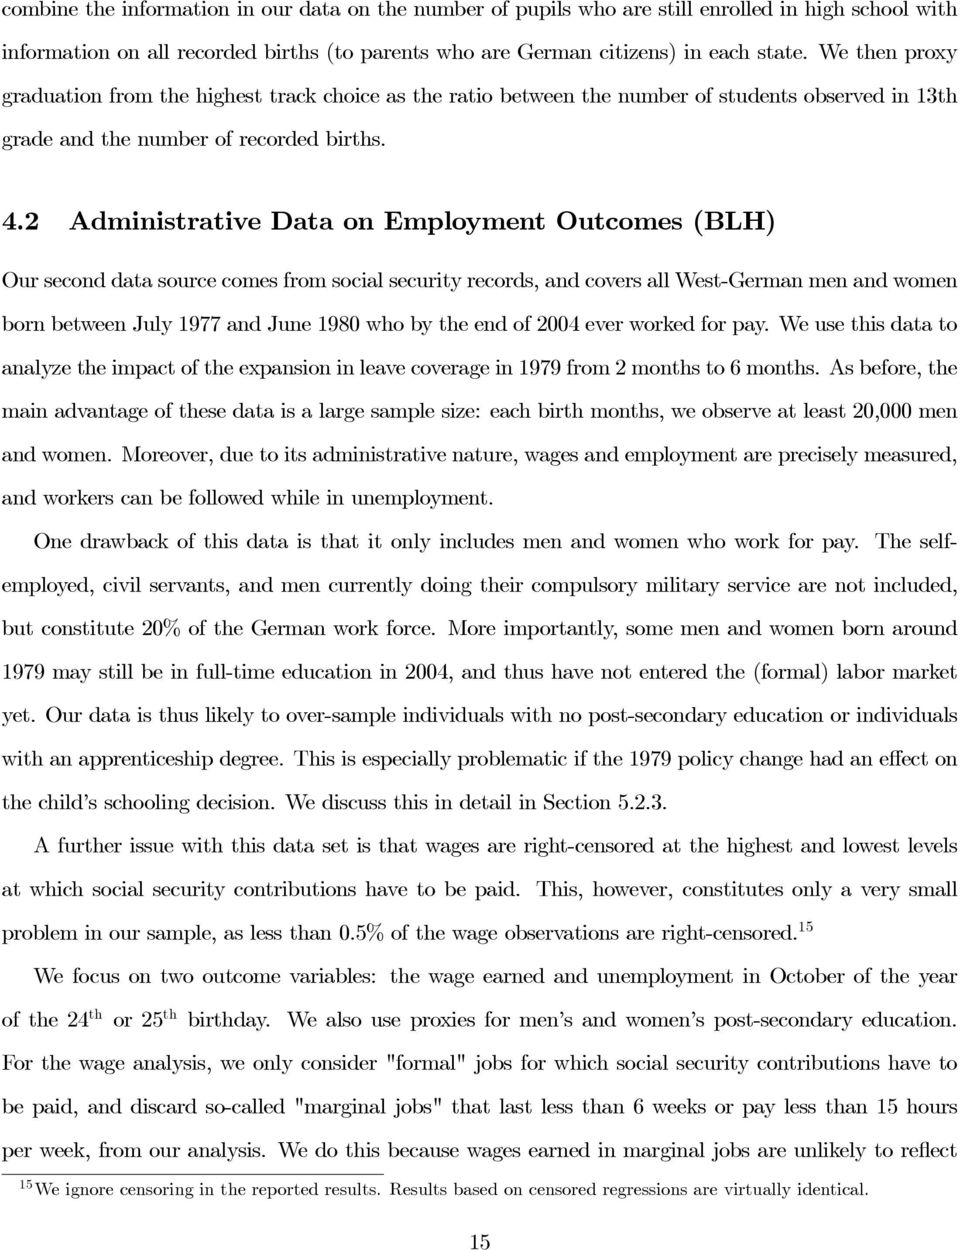 2 Administrative Data on Employment Outcomes (BLH) Our second data source comes from social security records, and covers all West-German men and women born between July 1977 and June 1980 who by the